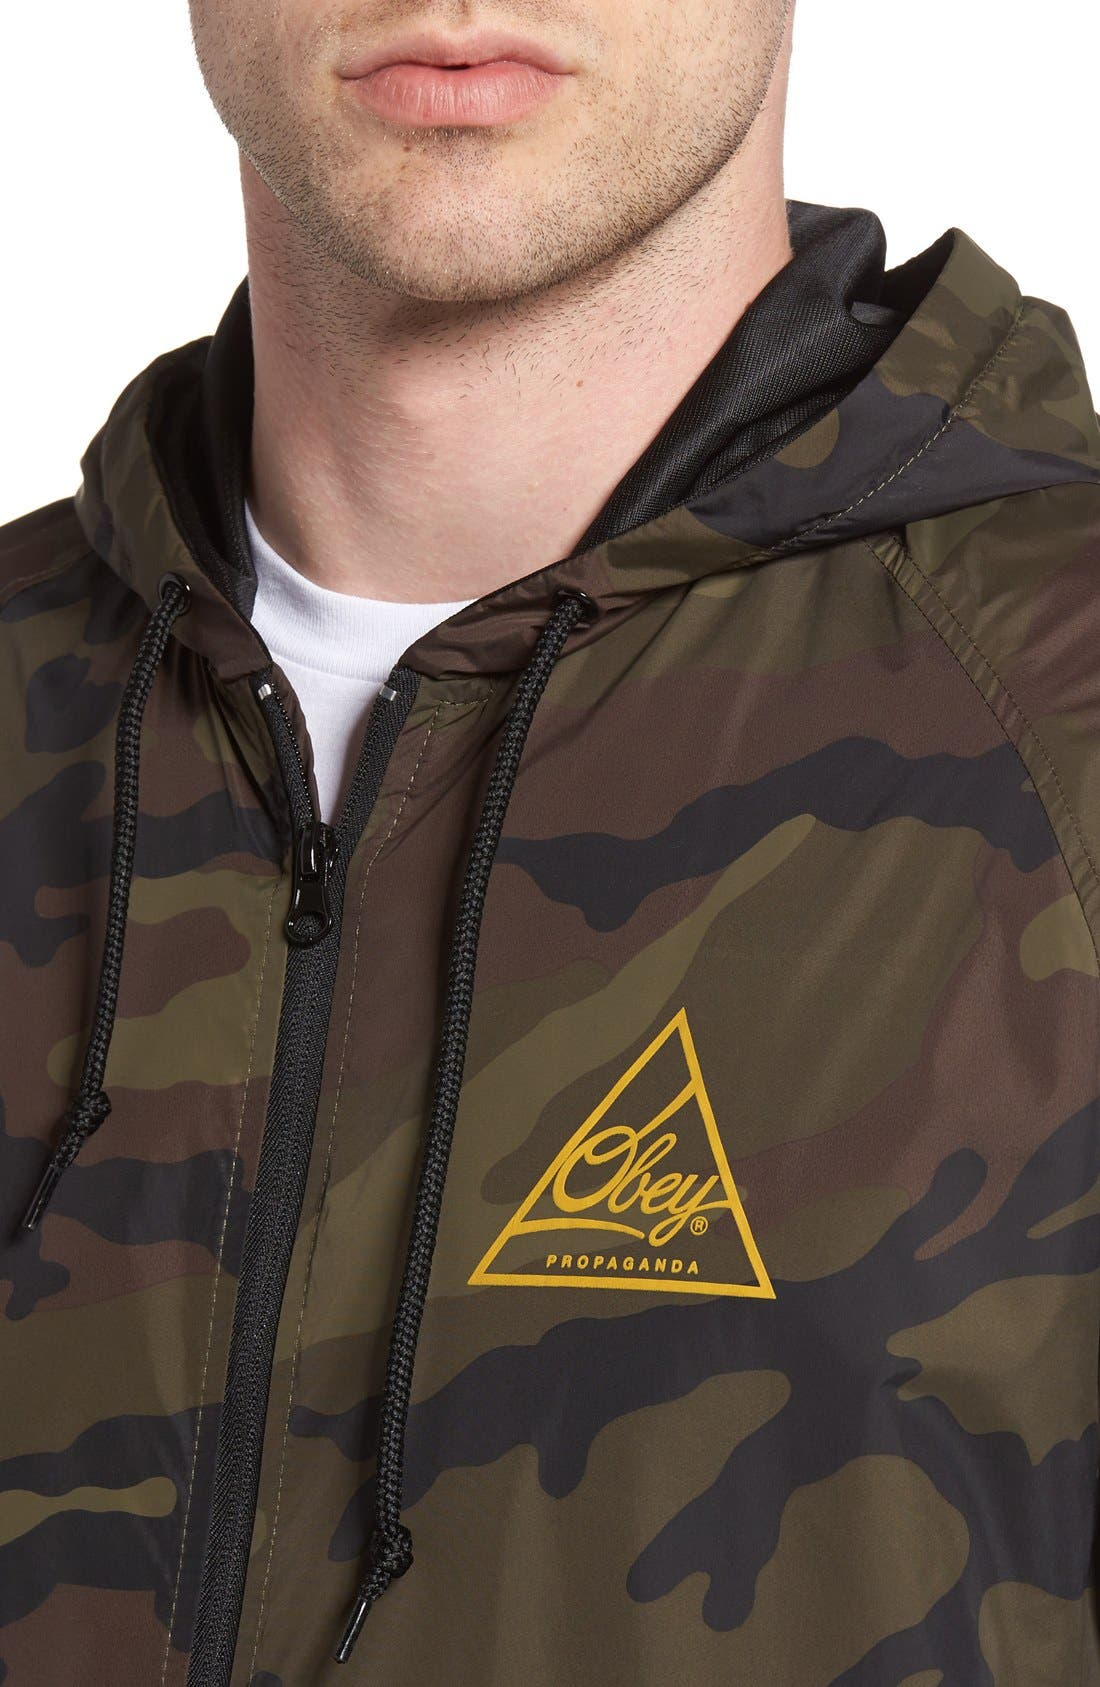 Next Round 2 Hooded Coach Jacket,                             Alternate thumbnail 8, color,                             305